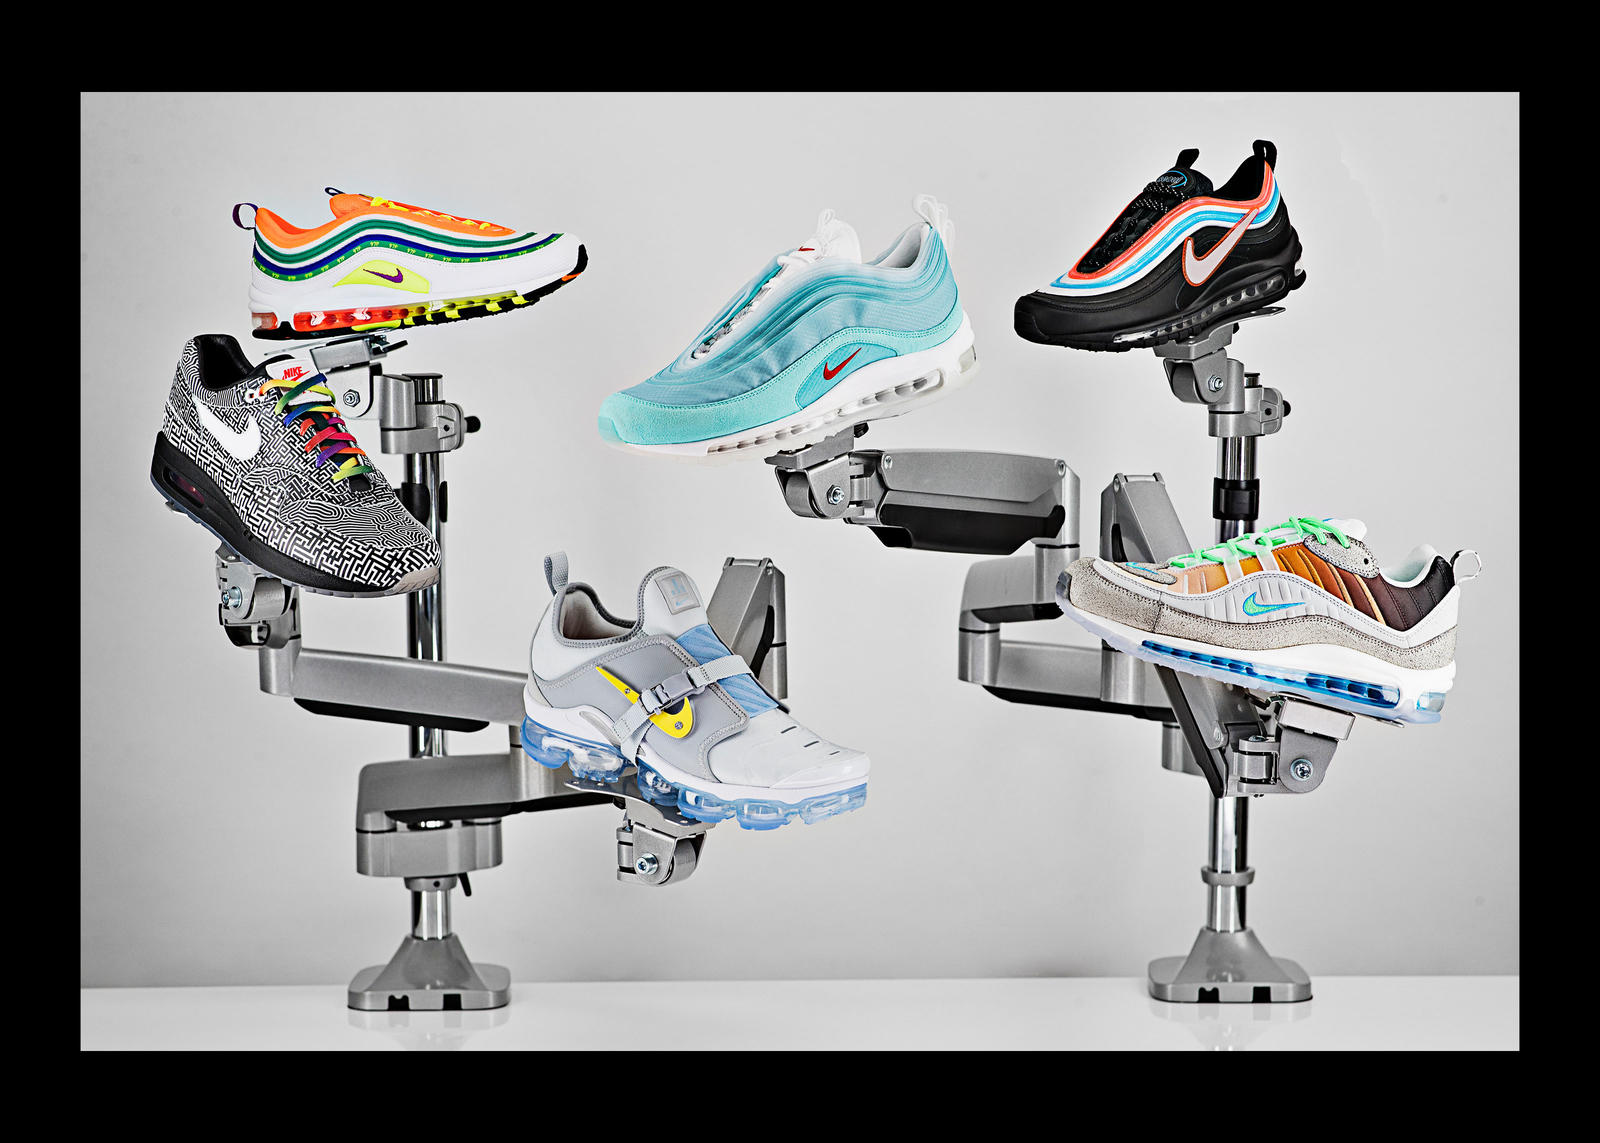 53984226 Here are the Final Designs of the Nike: On Air Winners [Mock Draft,